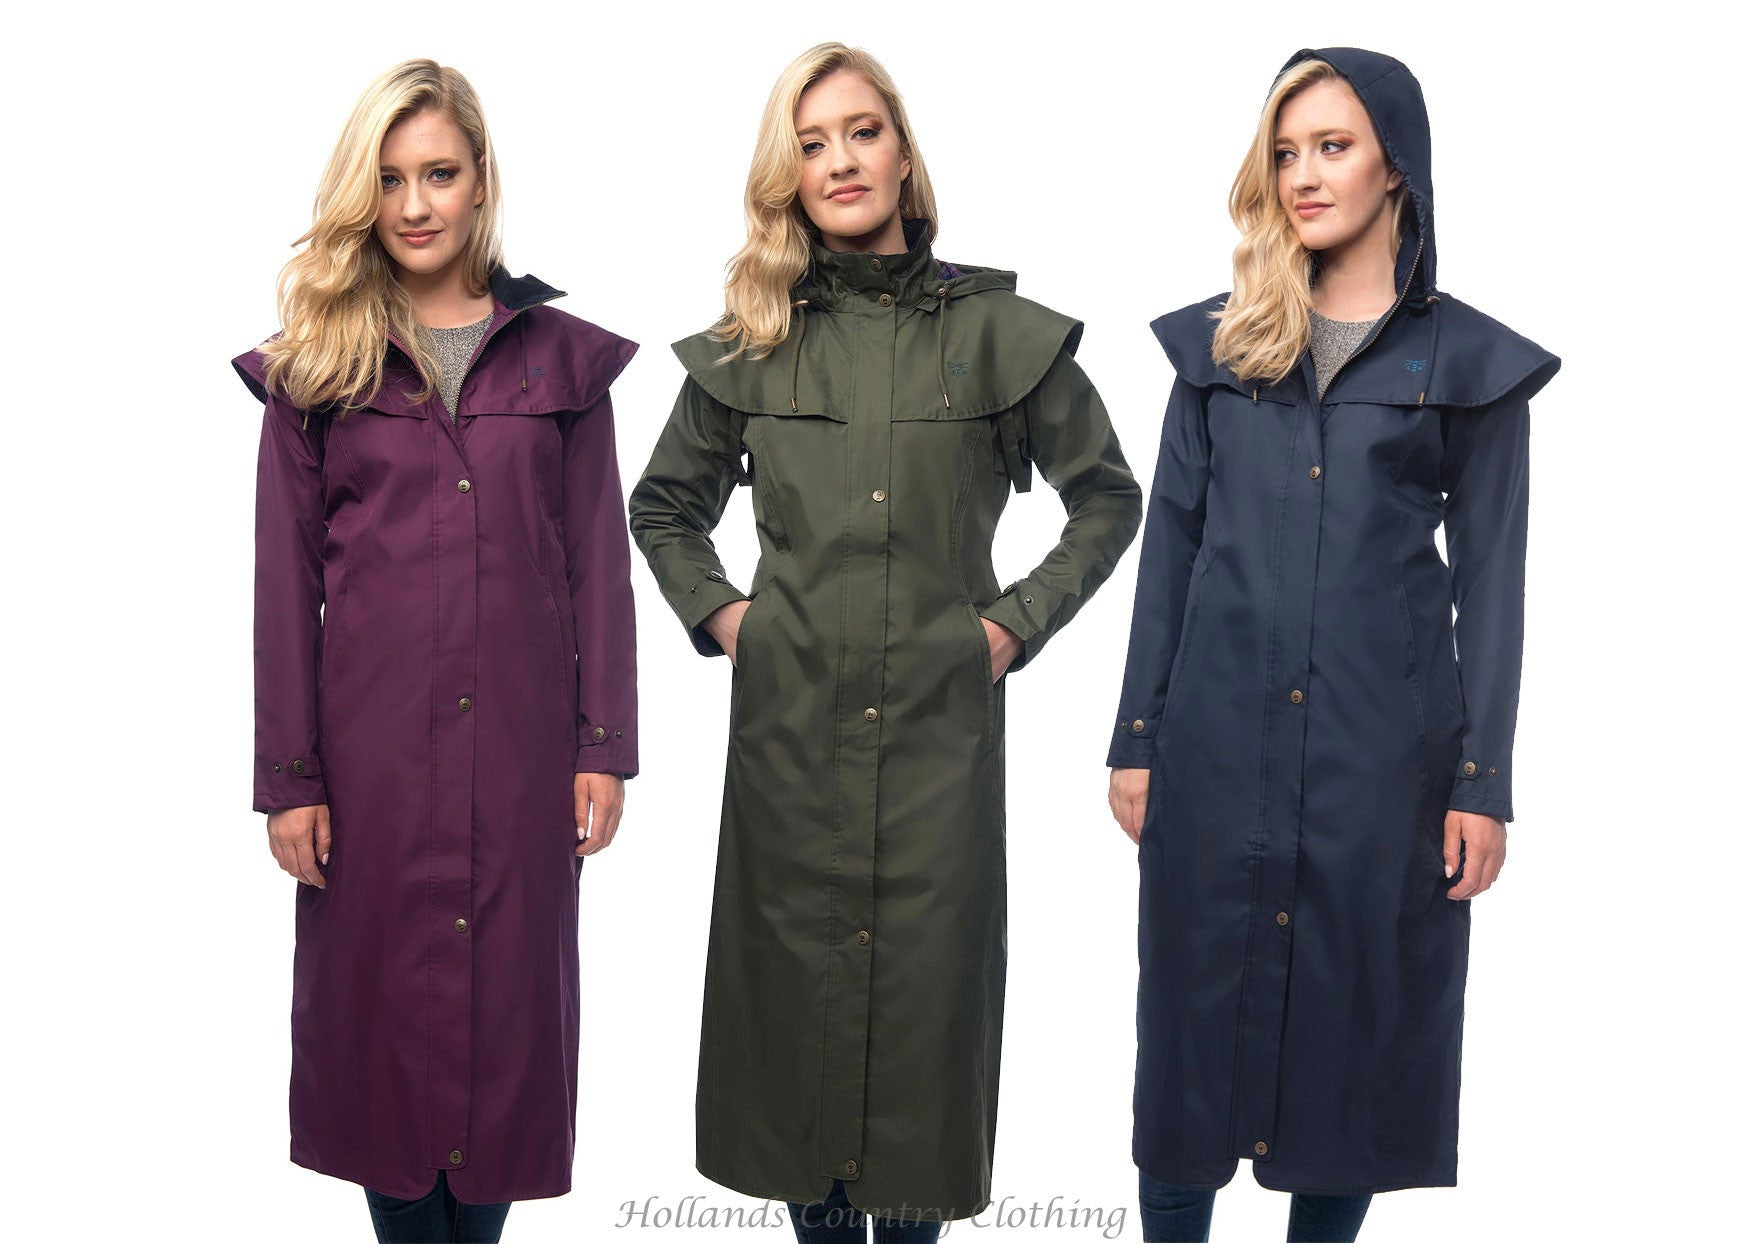 8a5aeb4cb A Collection of Ladies' Long and Three Quarter Length Coats selected by  Holland's Country Clothing